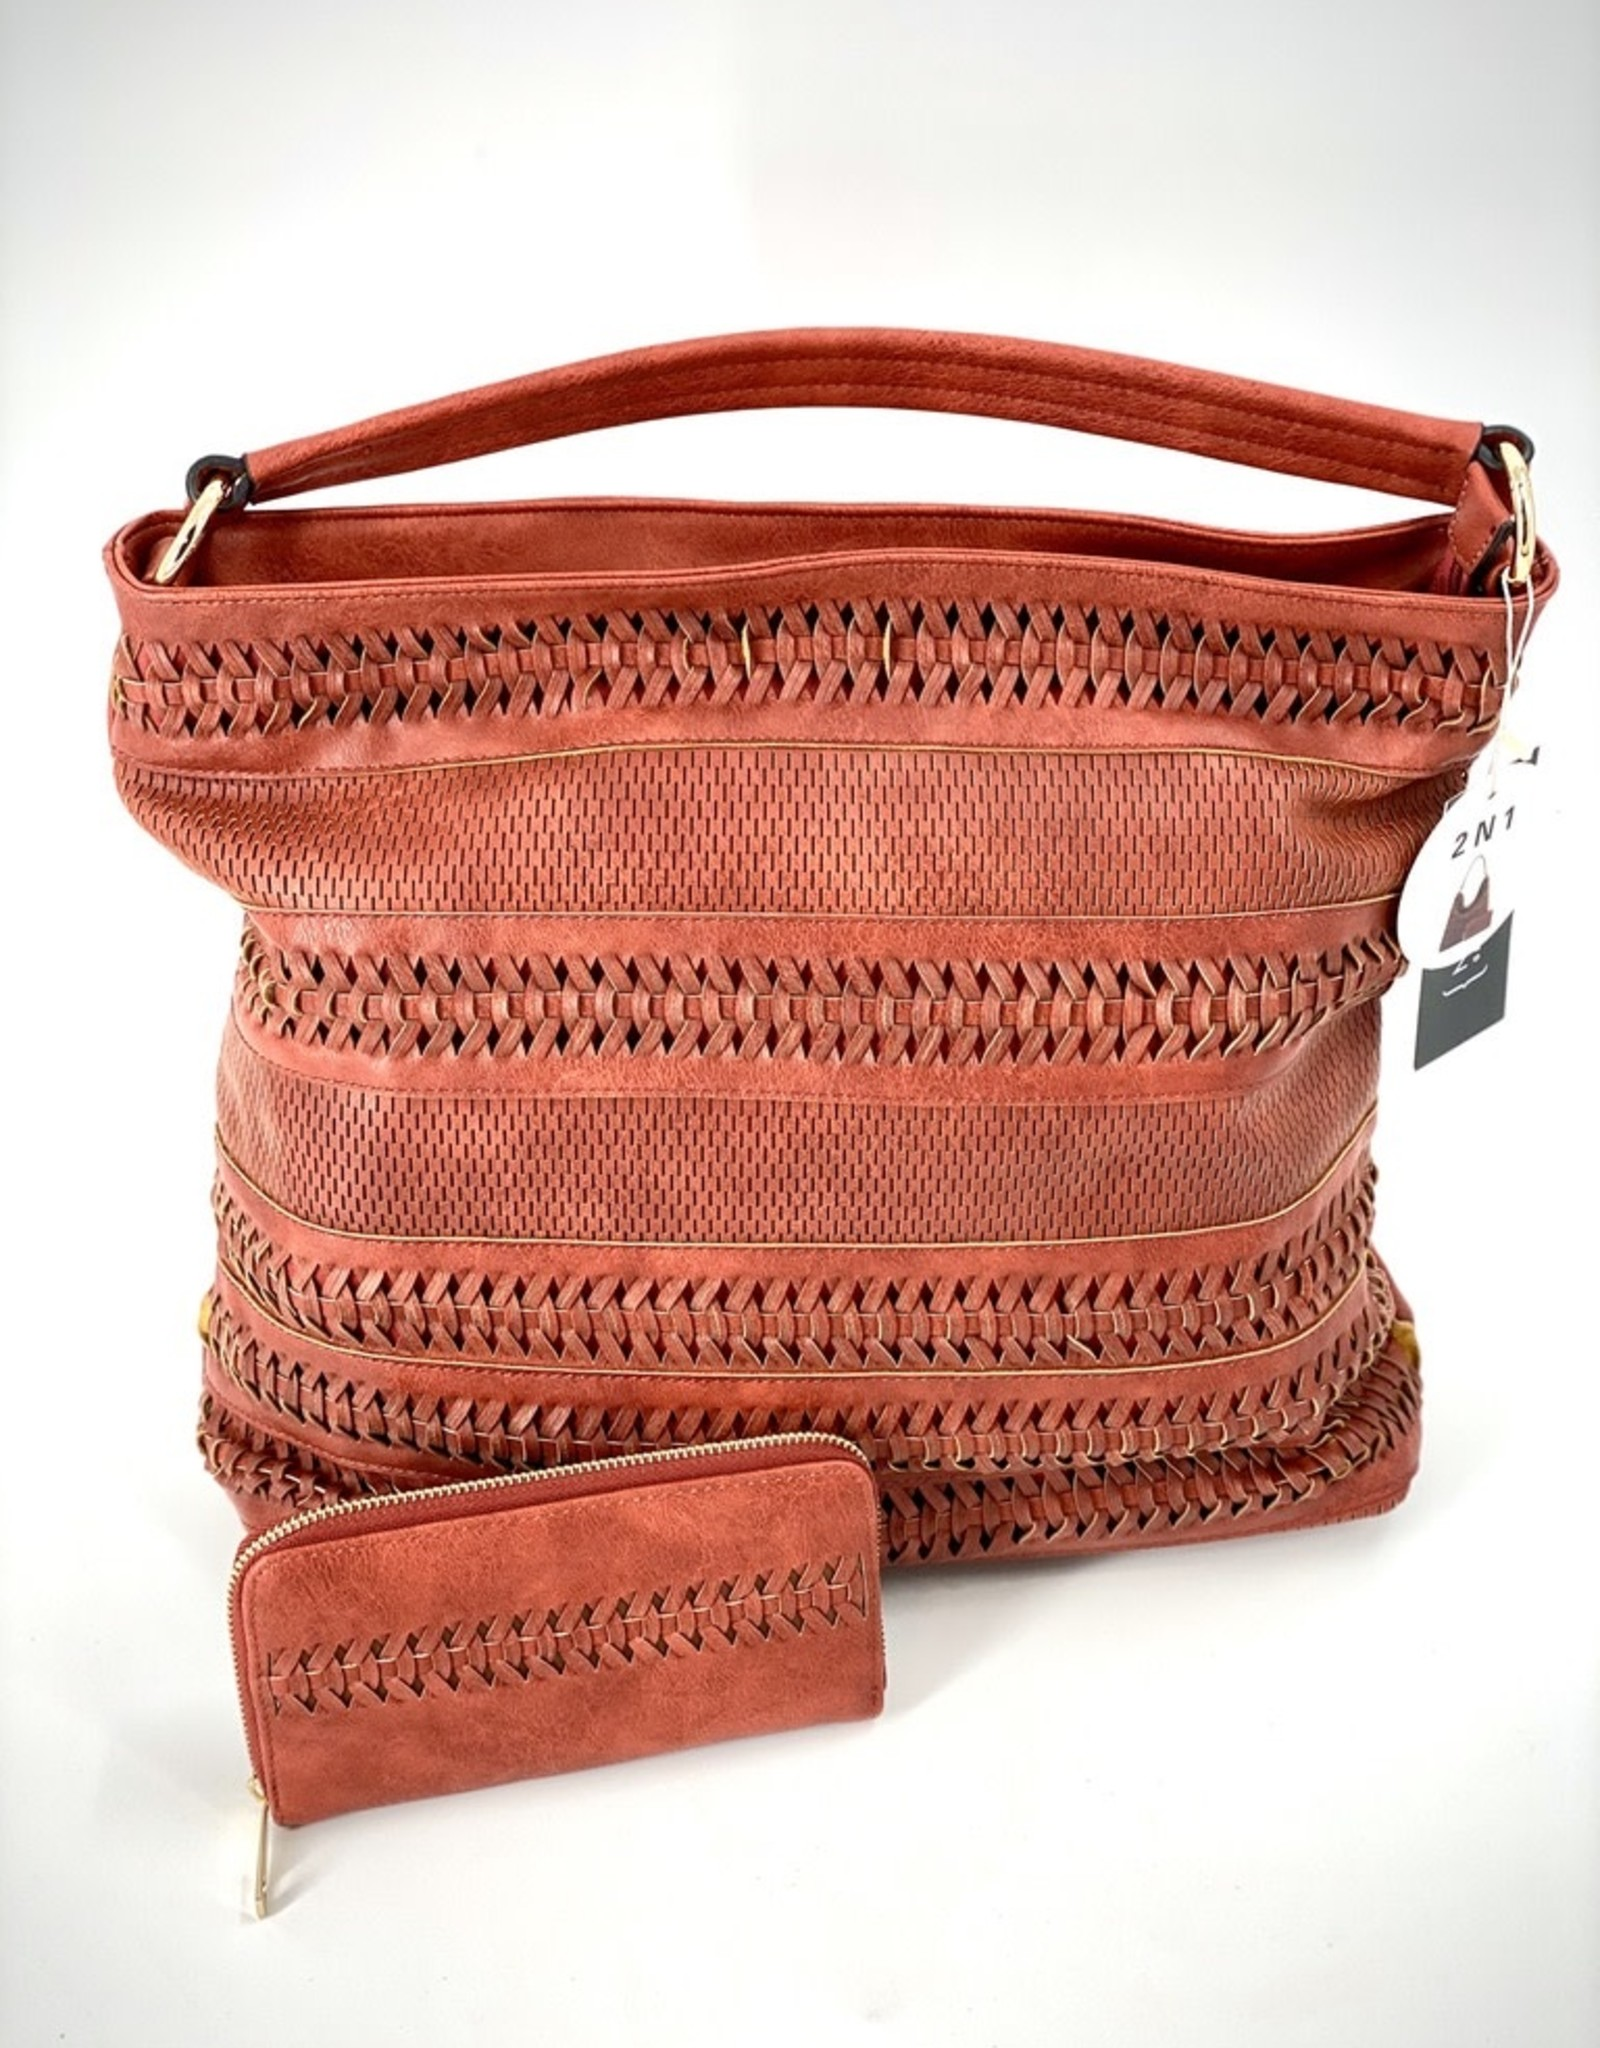 PURSE TWO IN ONE TOTE VEGAN LEATHER